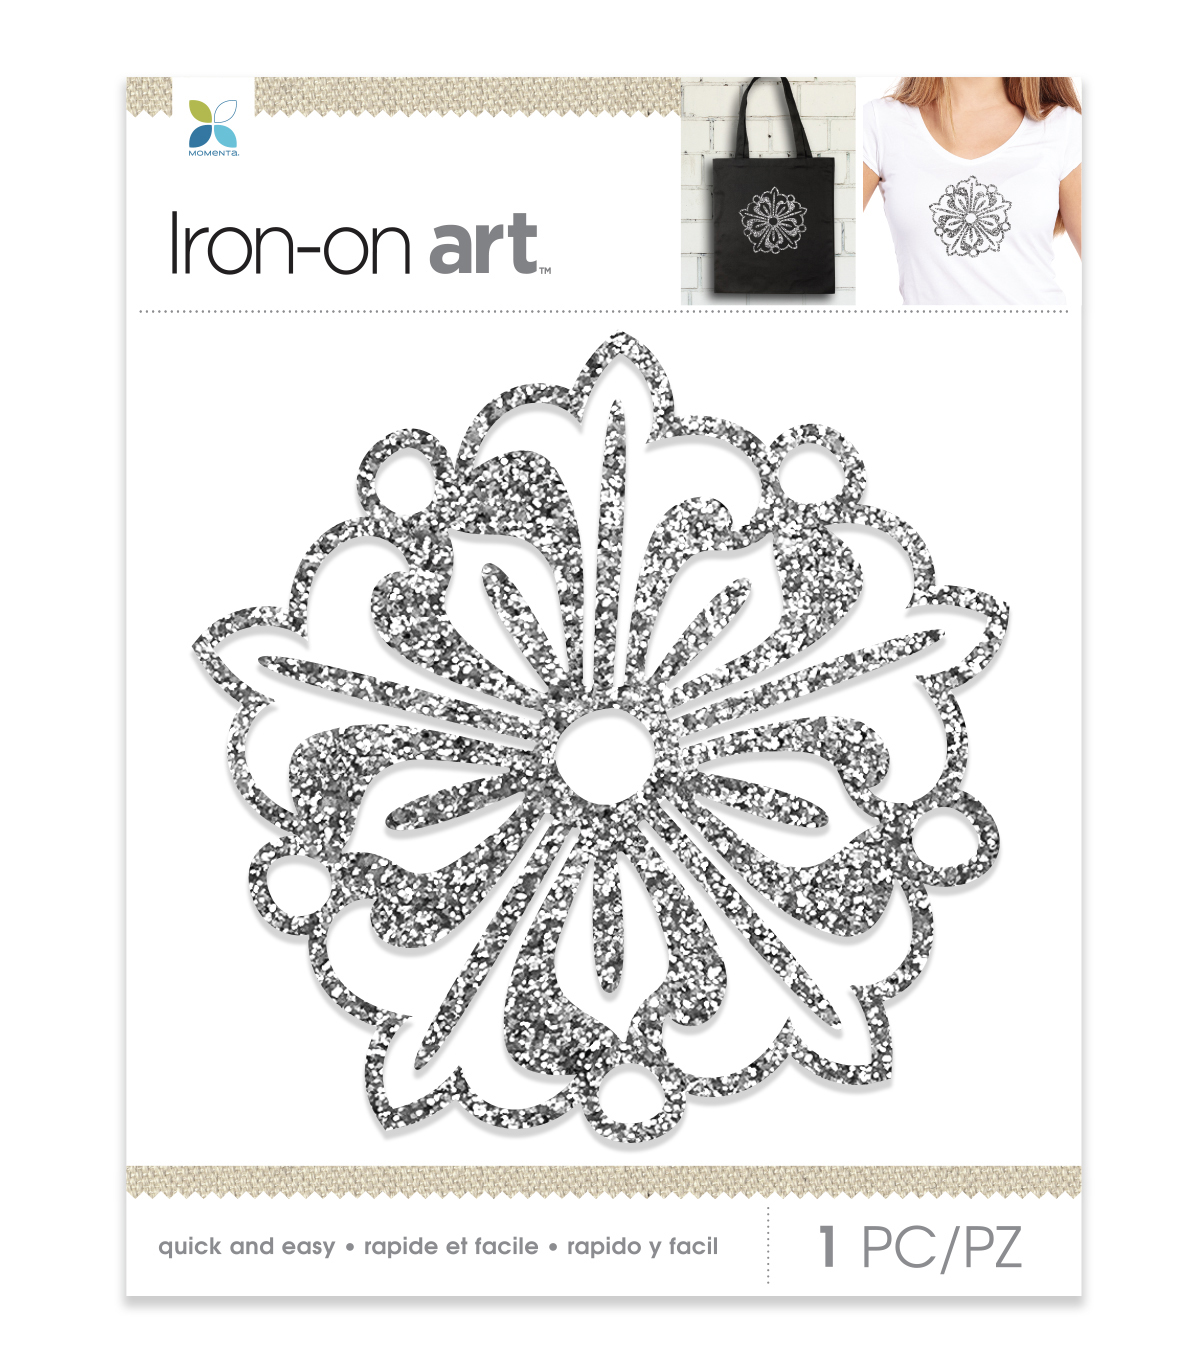 Momenta Medallion Glitter Iron-on Art-Silver